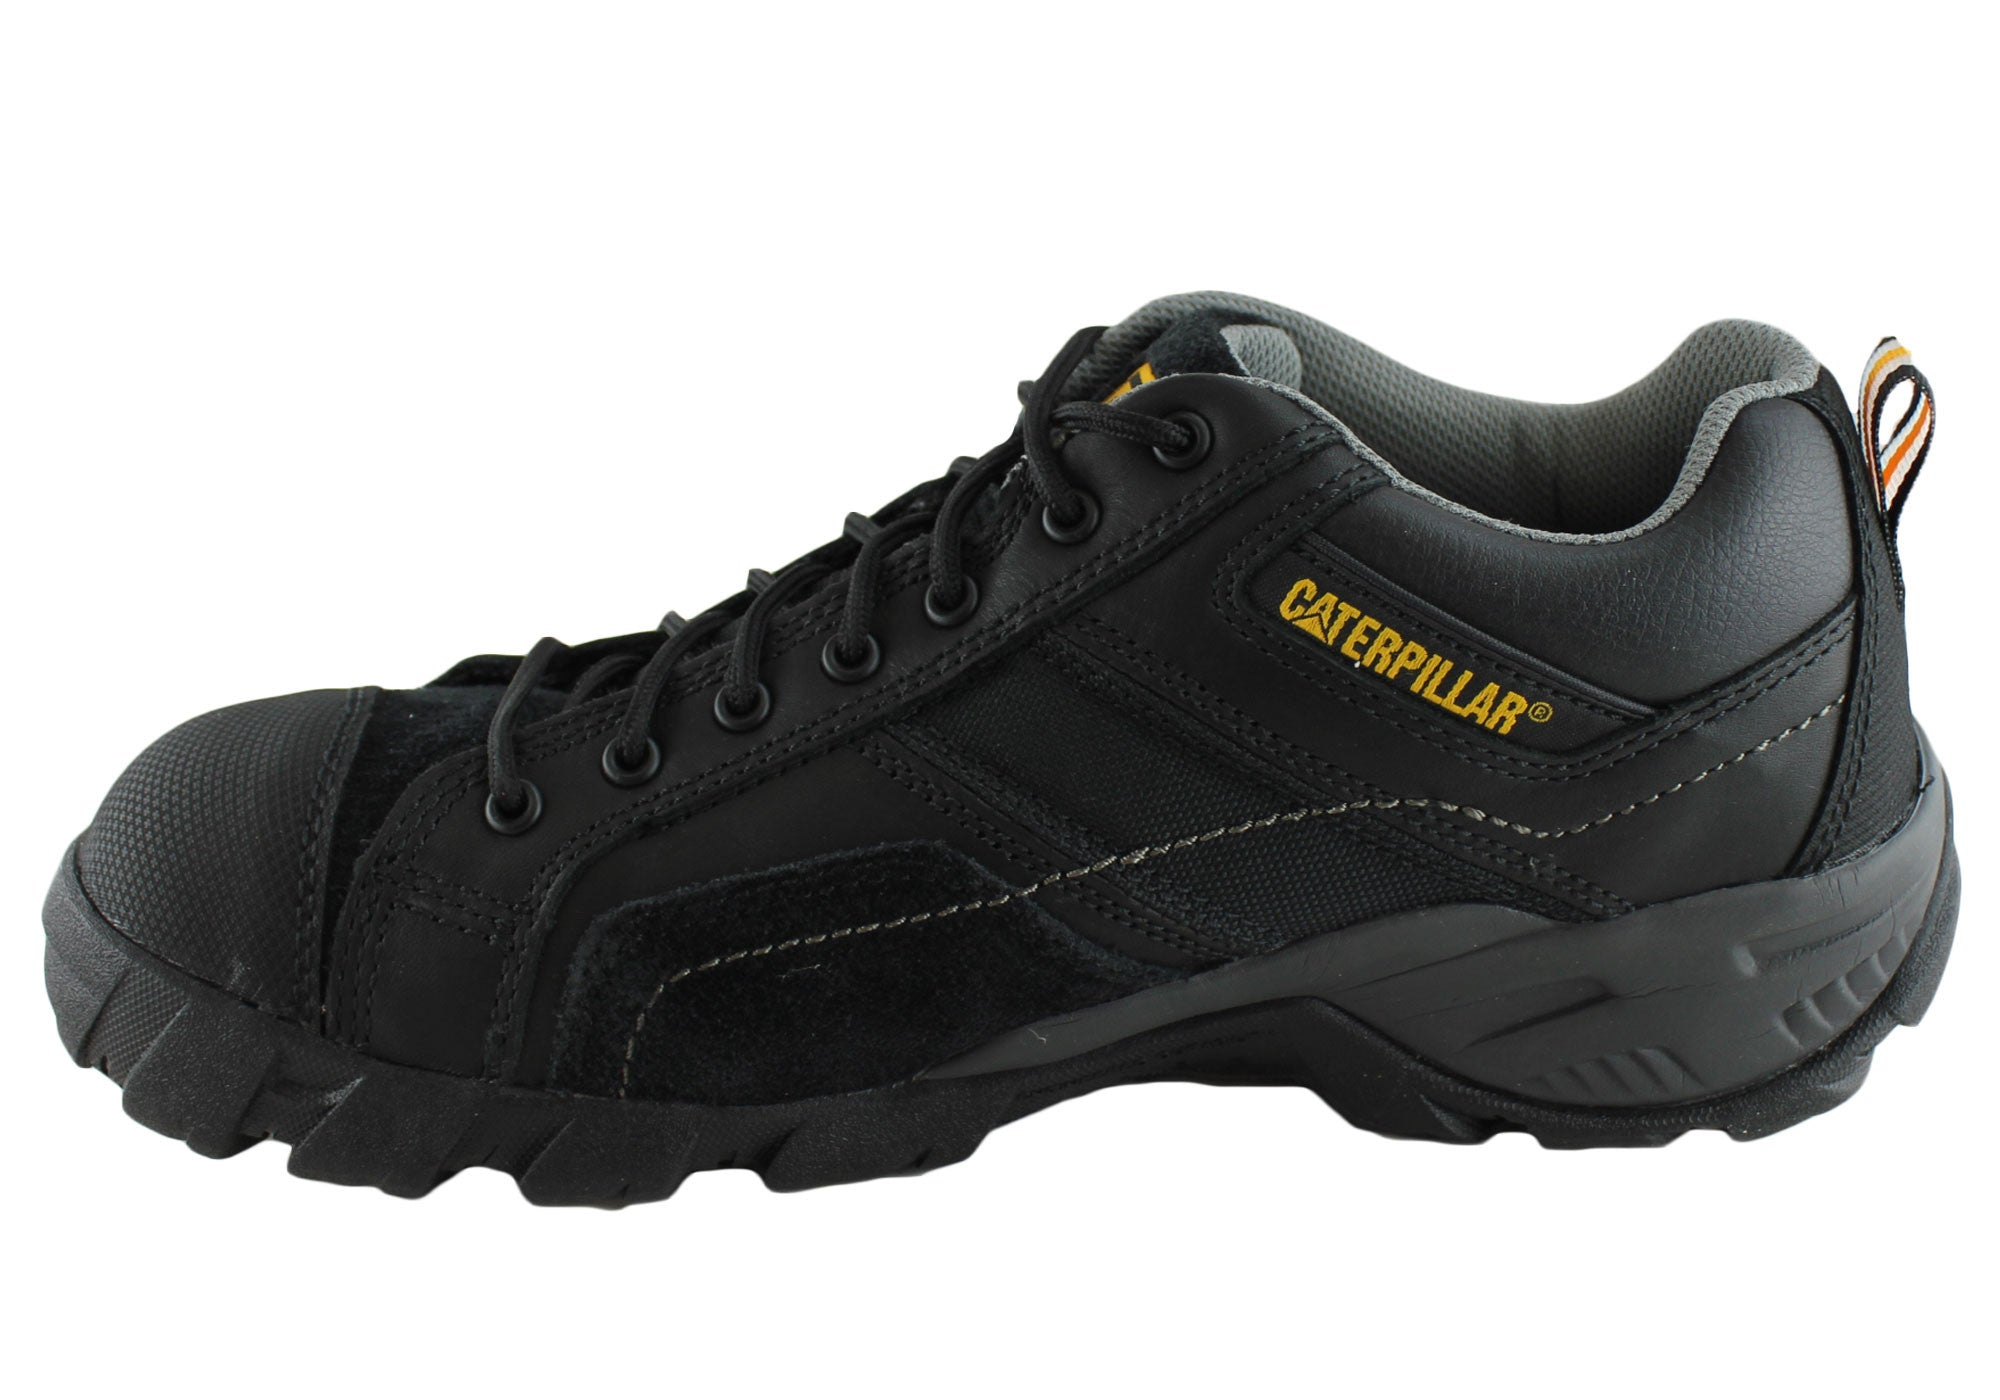 Dress Safety Shoes Composite Toe